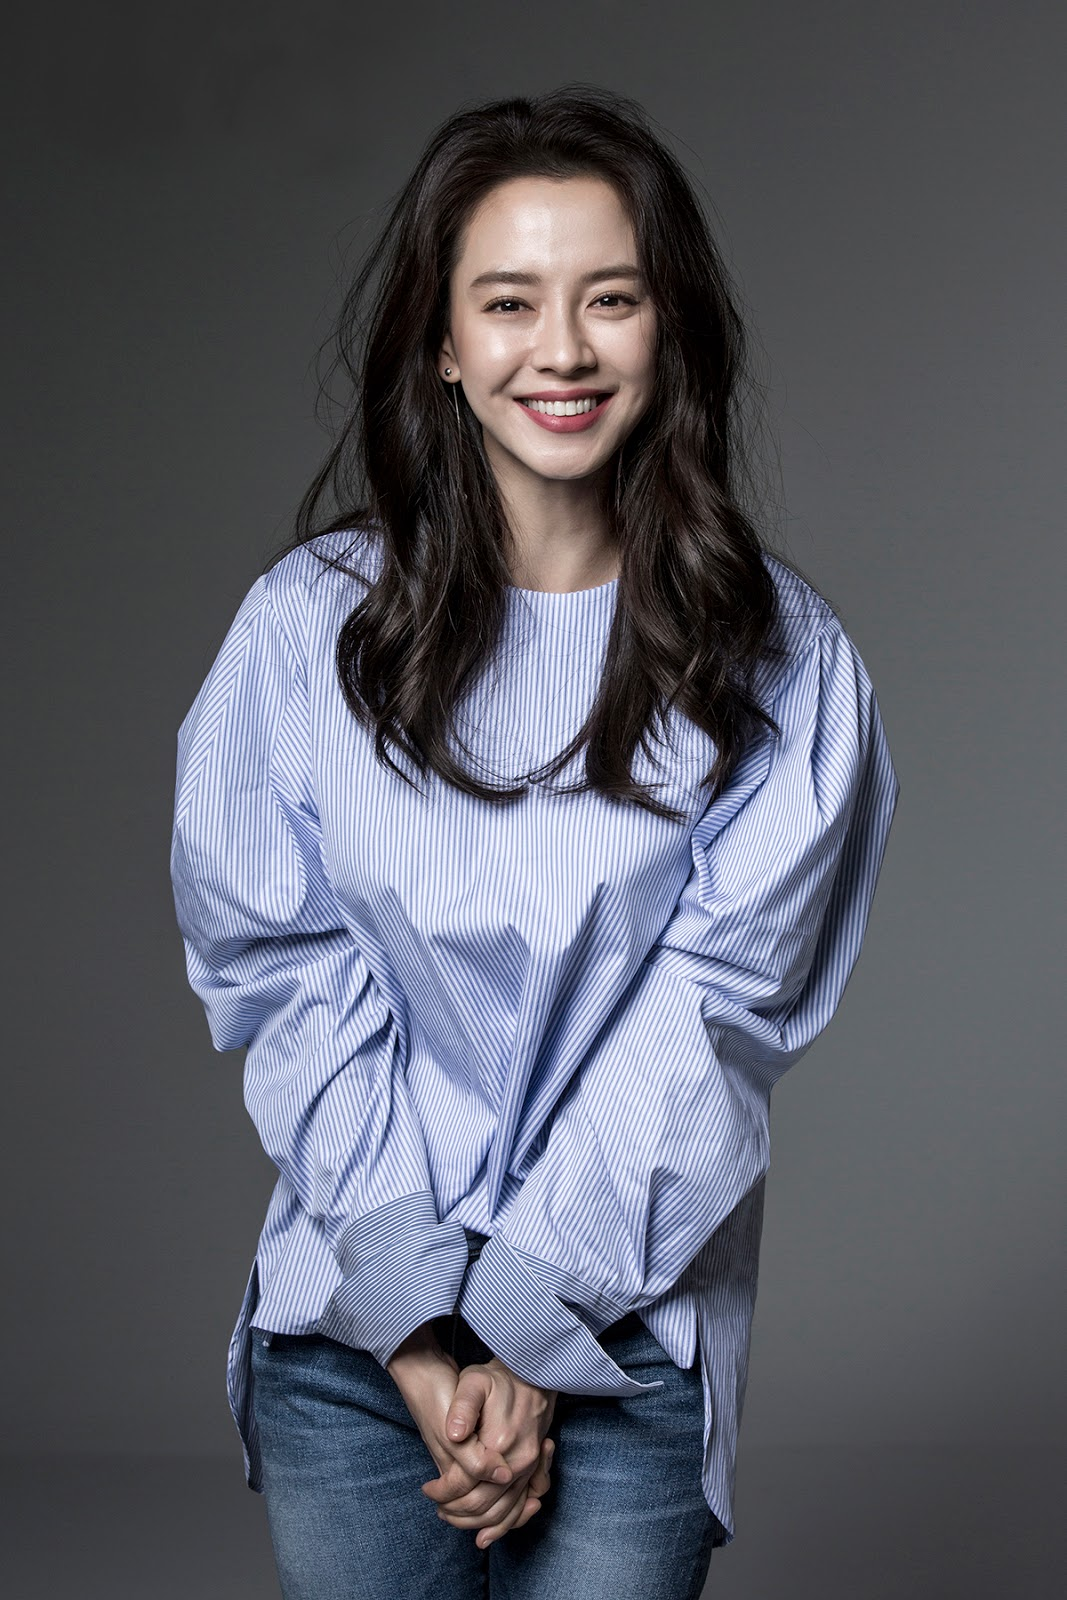 Sbs entertainment award 2019 song ji hyo dating